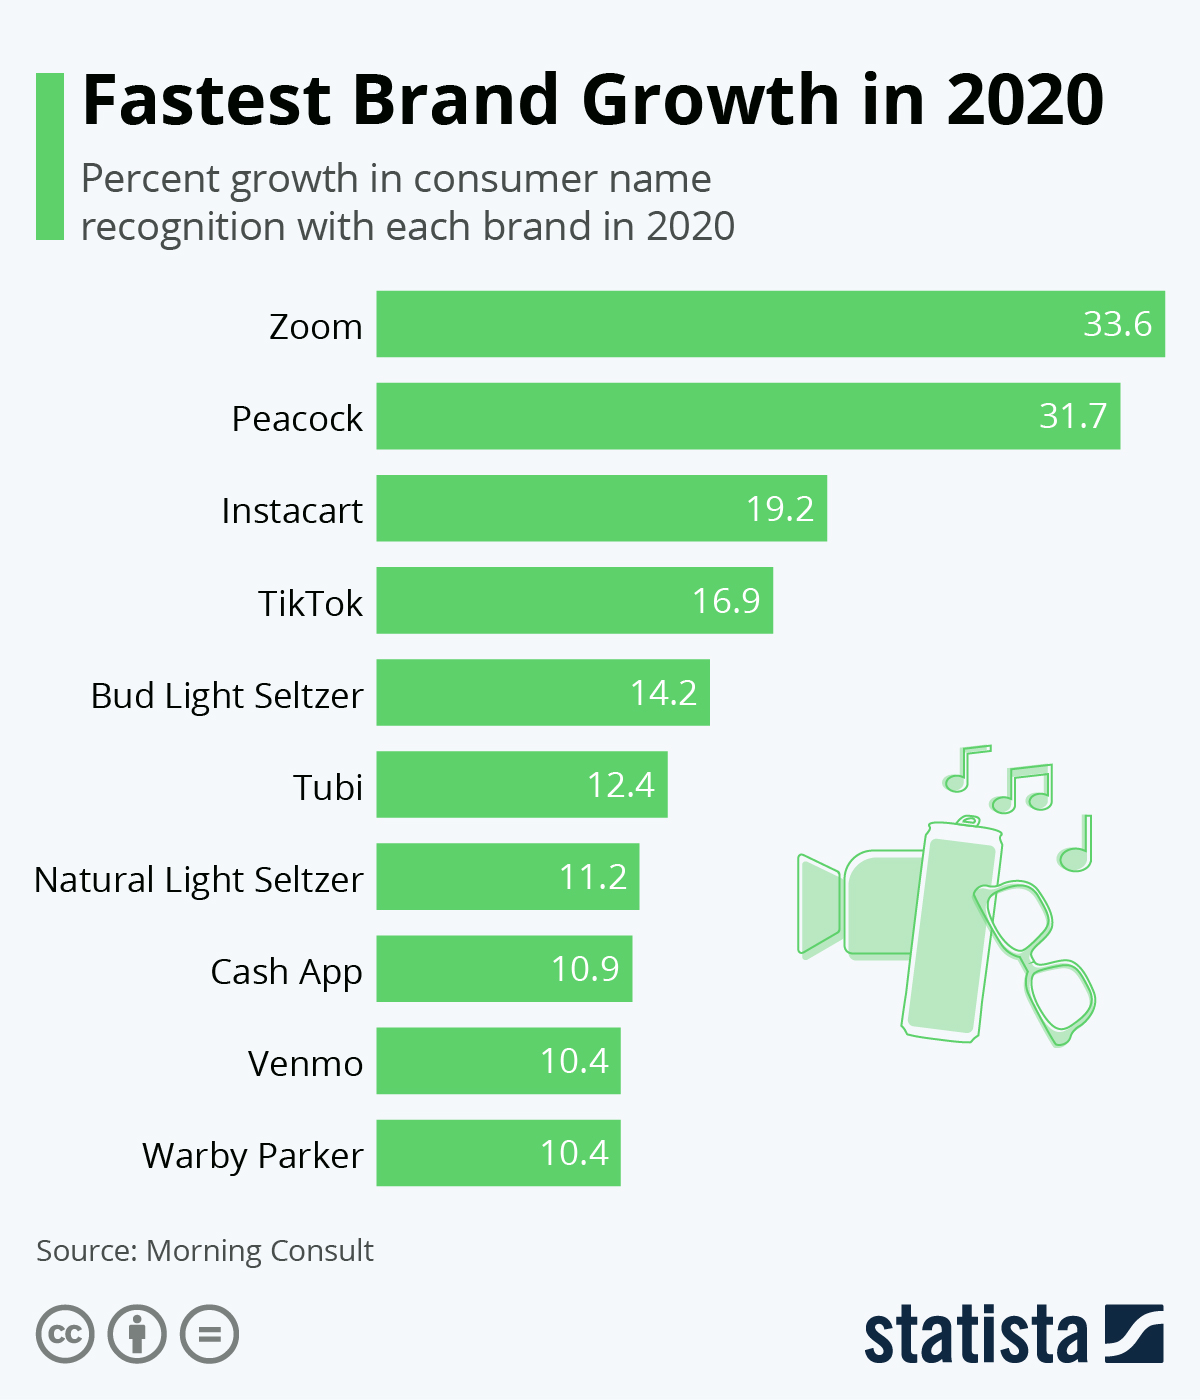 The Fastest Brand Growth in 2020